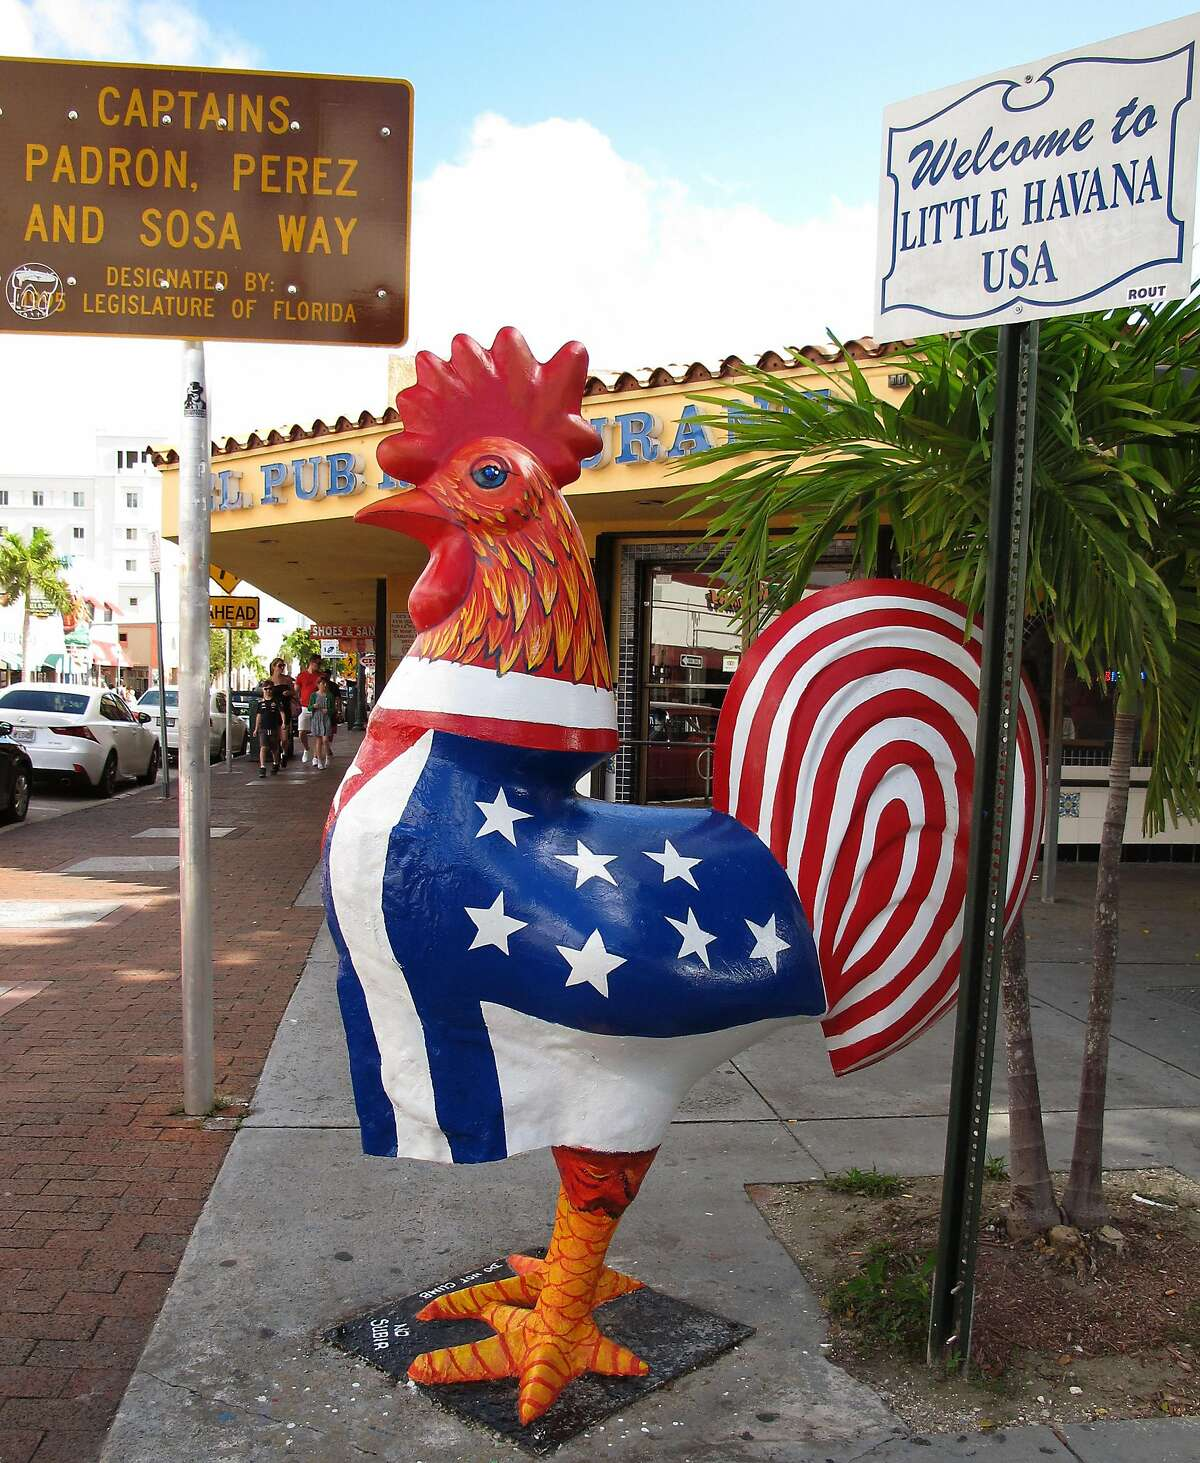 A stature of a rooster, said to be the spirit animal of Little Havana, stands outside a restaurant in the neighborhood.